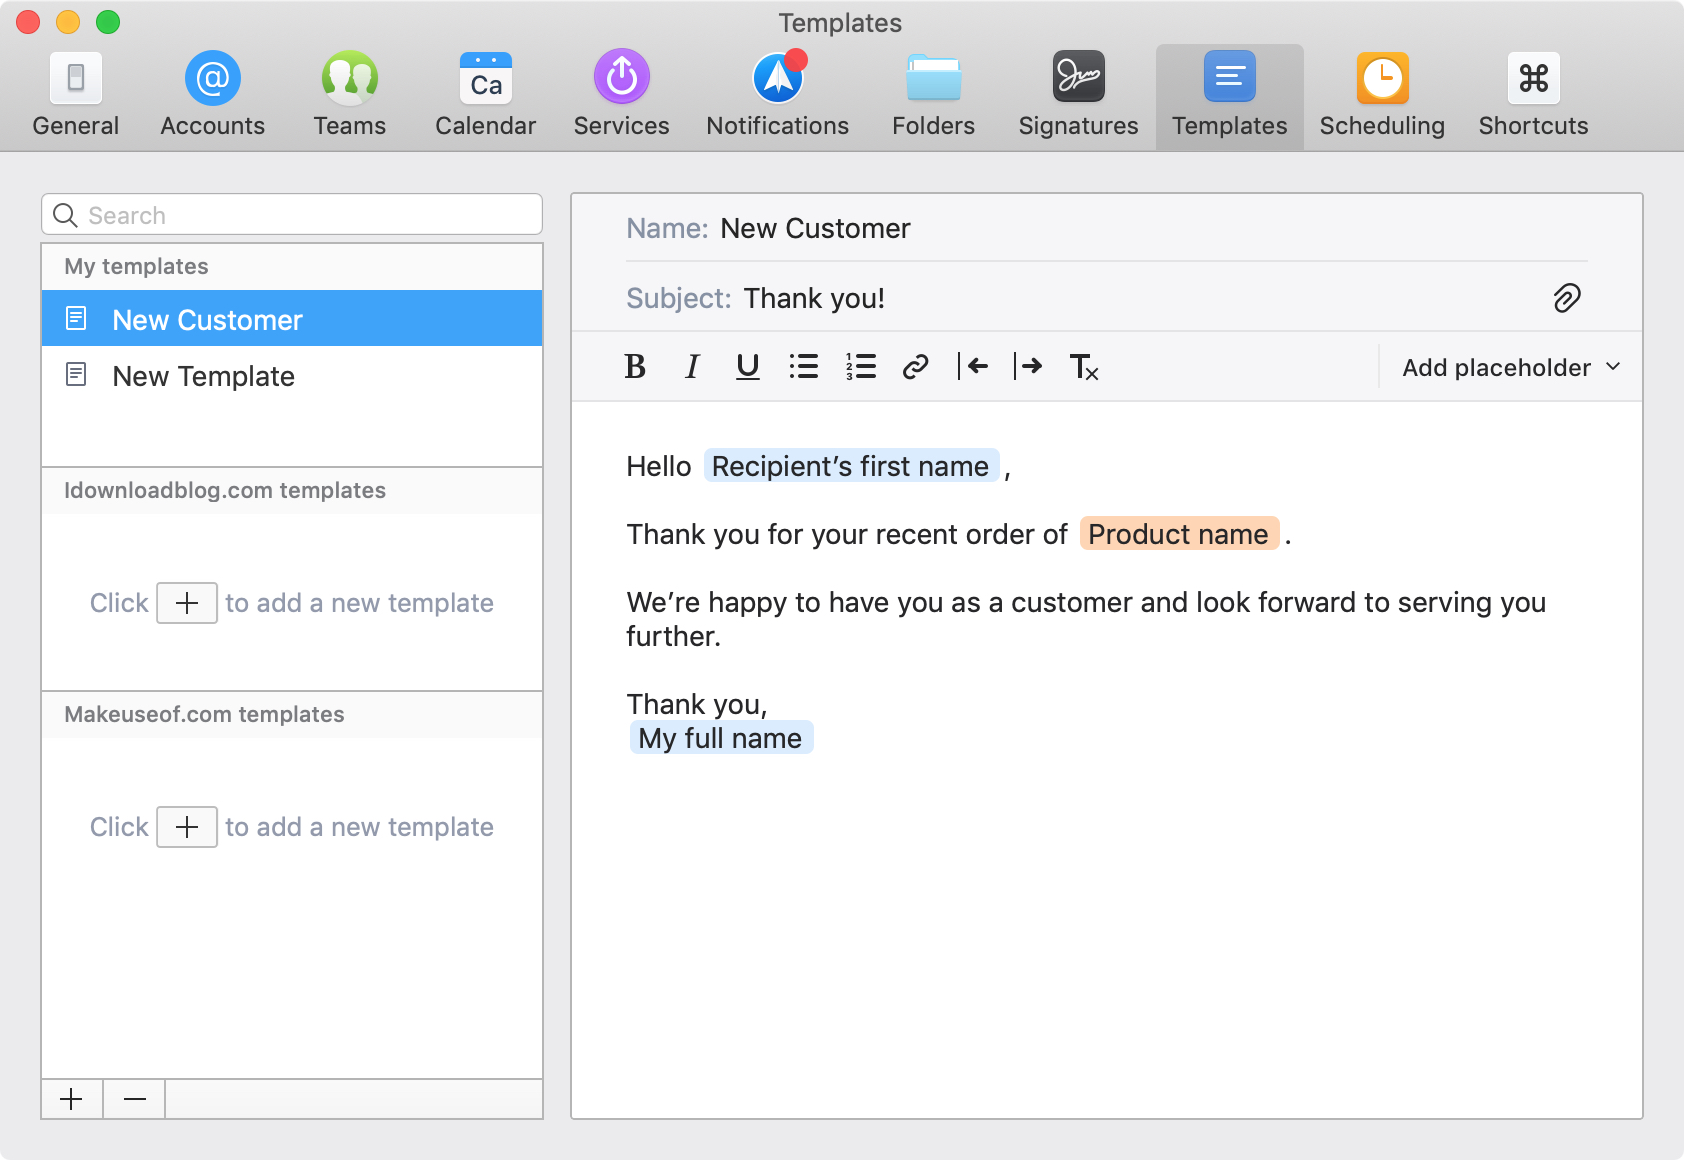 Spark Email Create New Customer Template on Mac